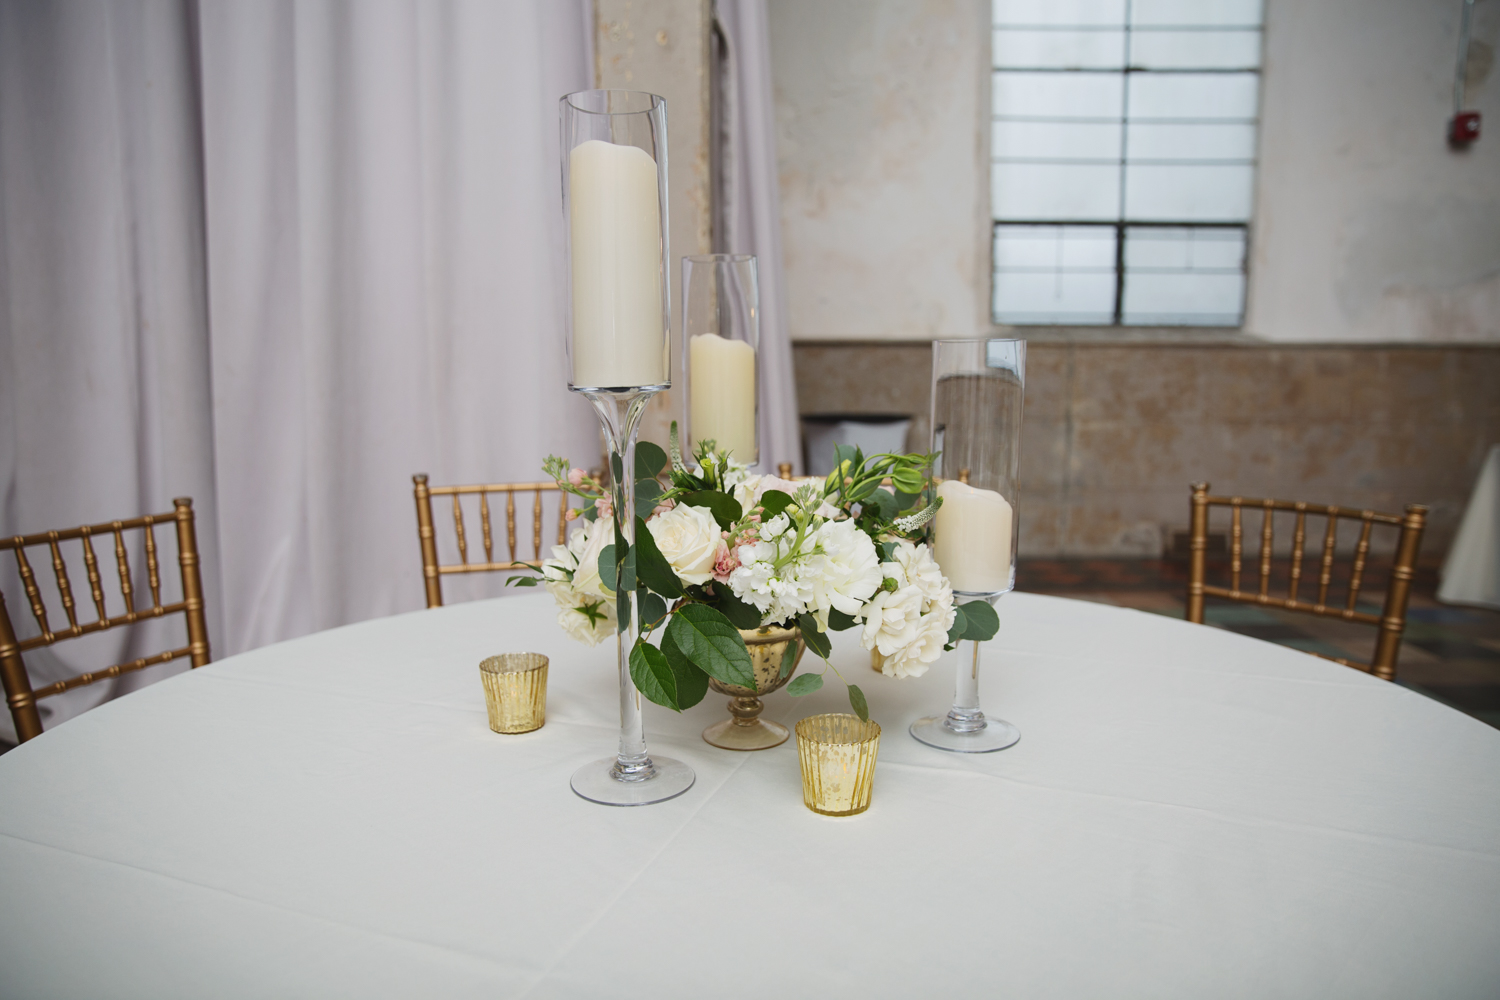 Southern Fete, Southern Wedding, Candle Center Piece, White and Green Flower Bouquet, Root Floral Design, Firefly Ambiance